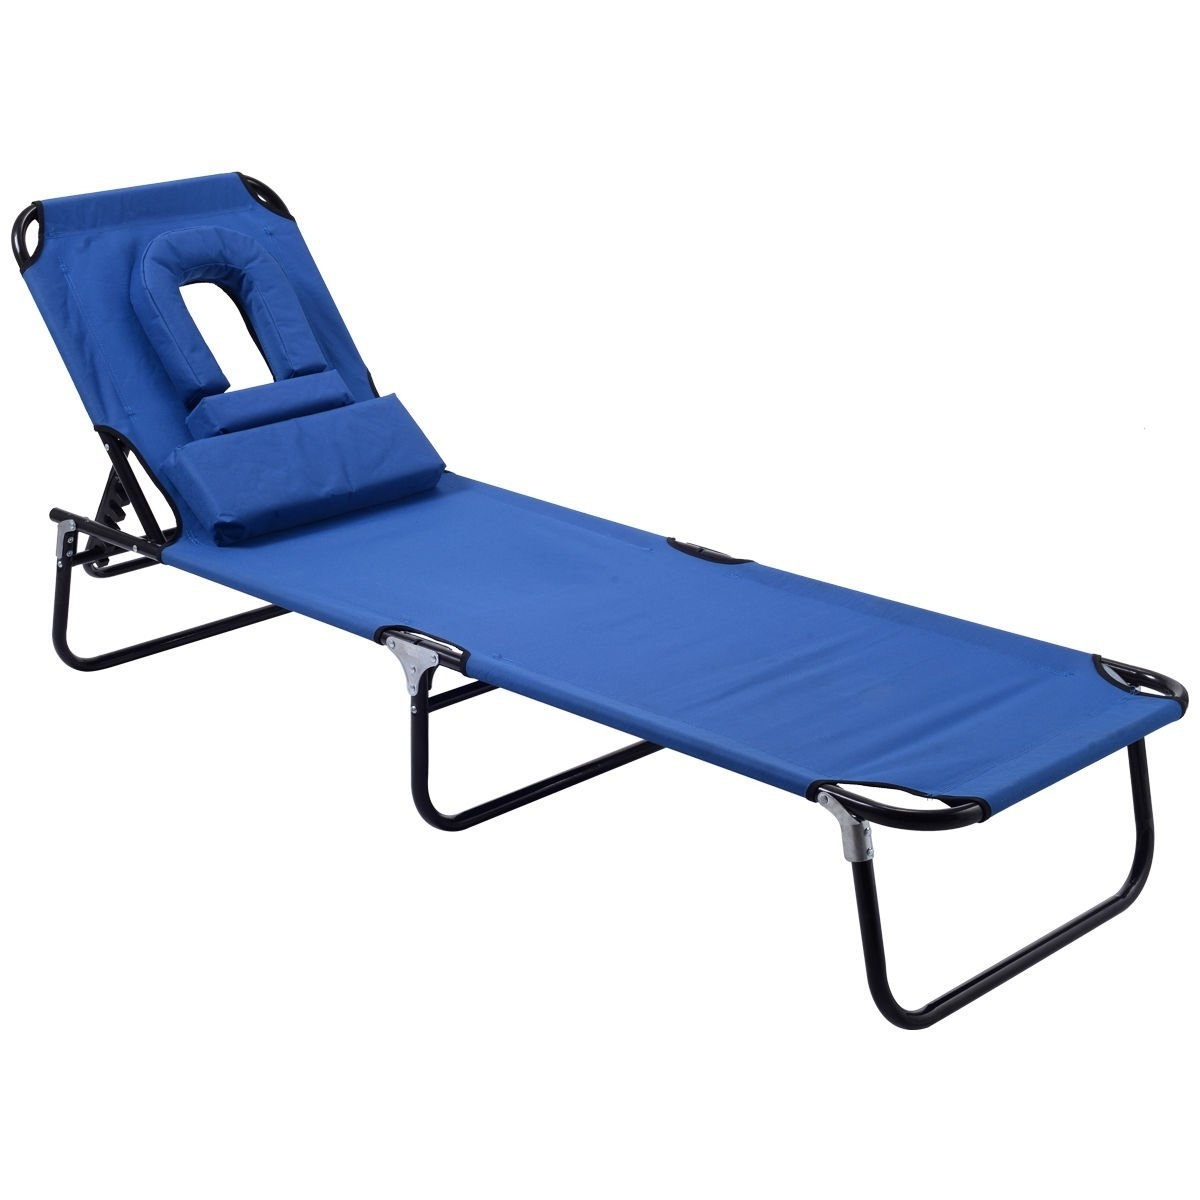 Most Current Outdoor : Lowes Outdoor Double Chaise Lounge Costco Patio Inside Foldable Chaise Lounge Outdoor Chairs (View 13 of 15)